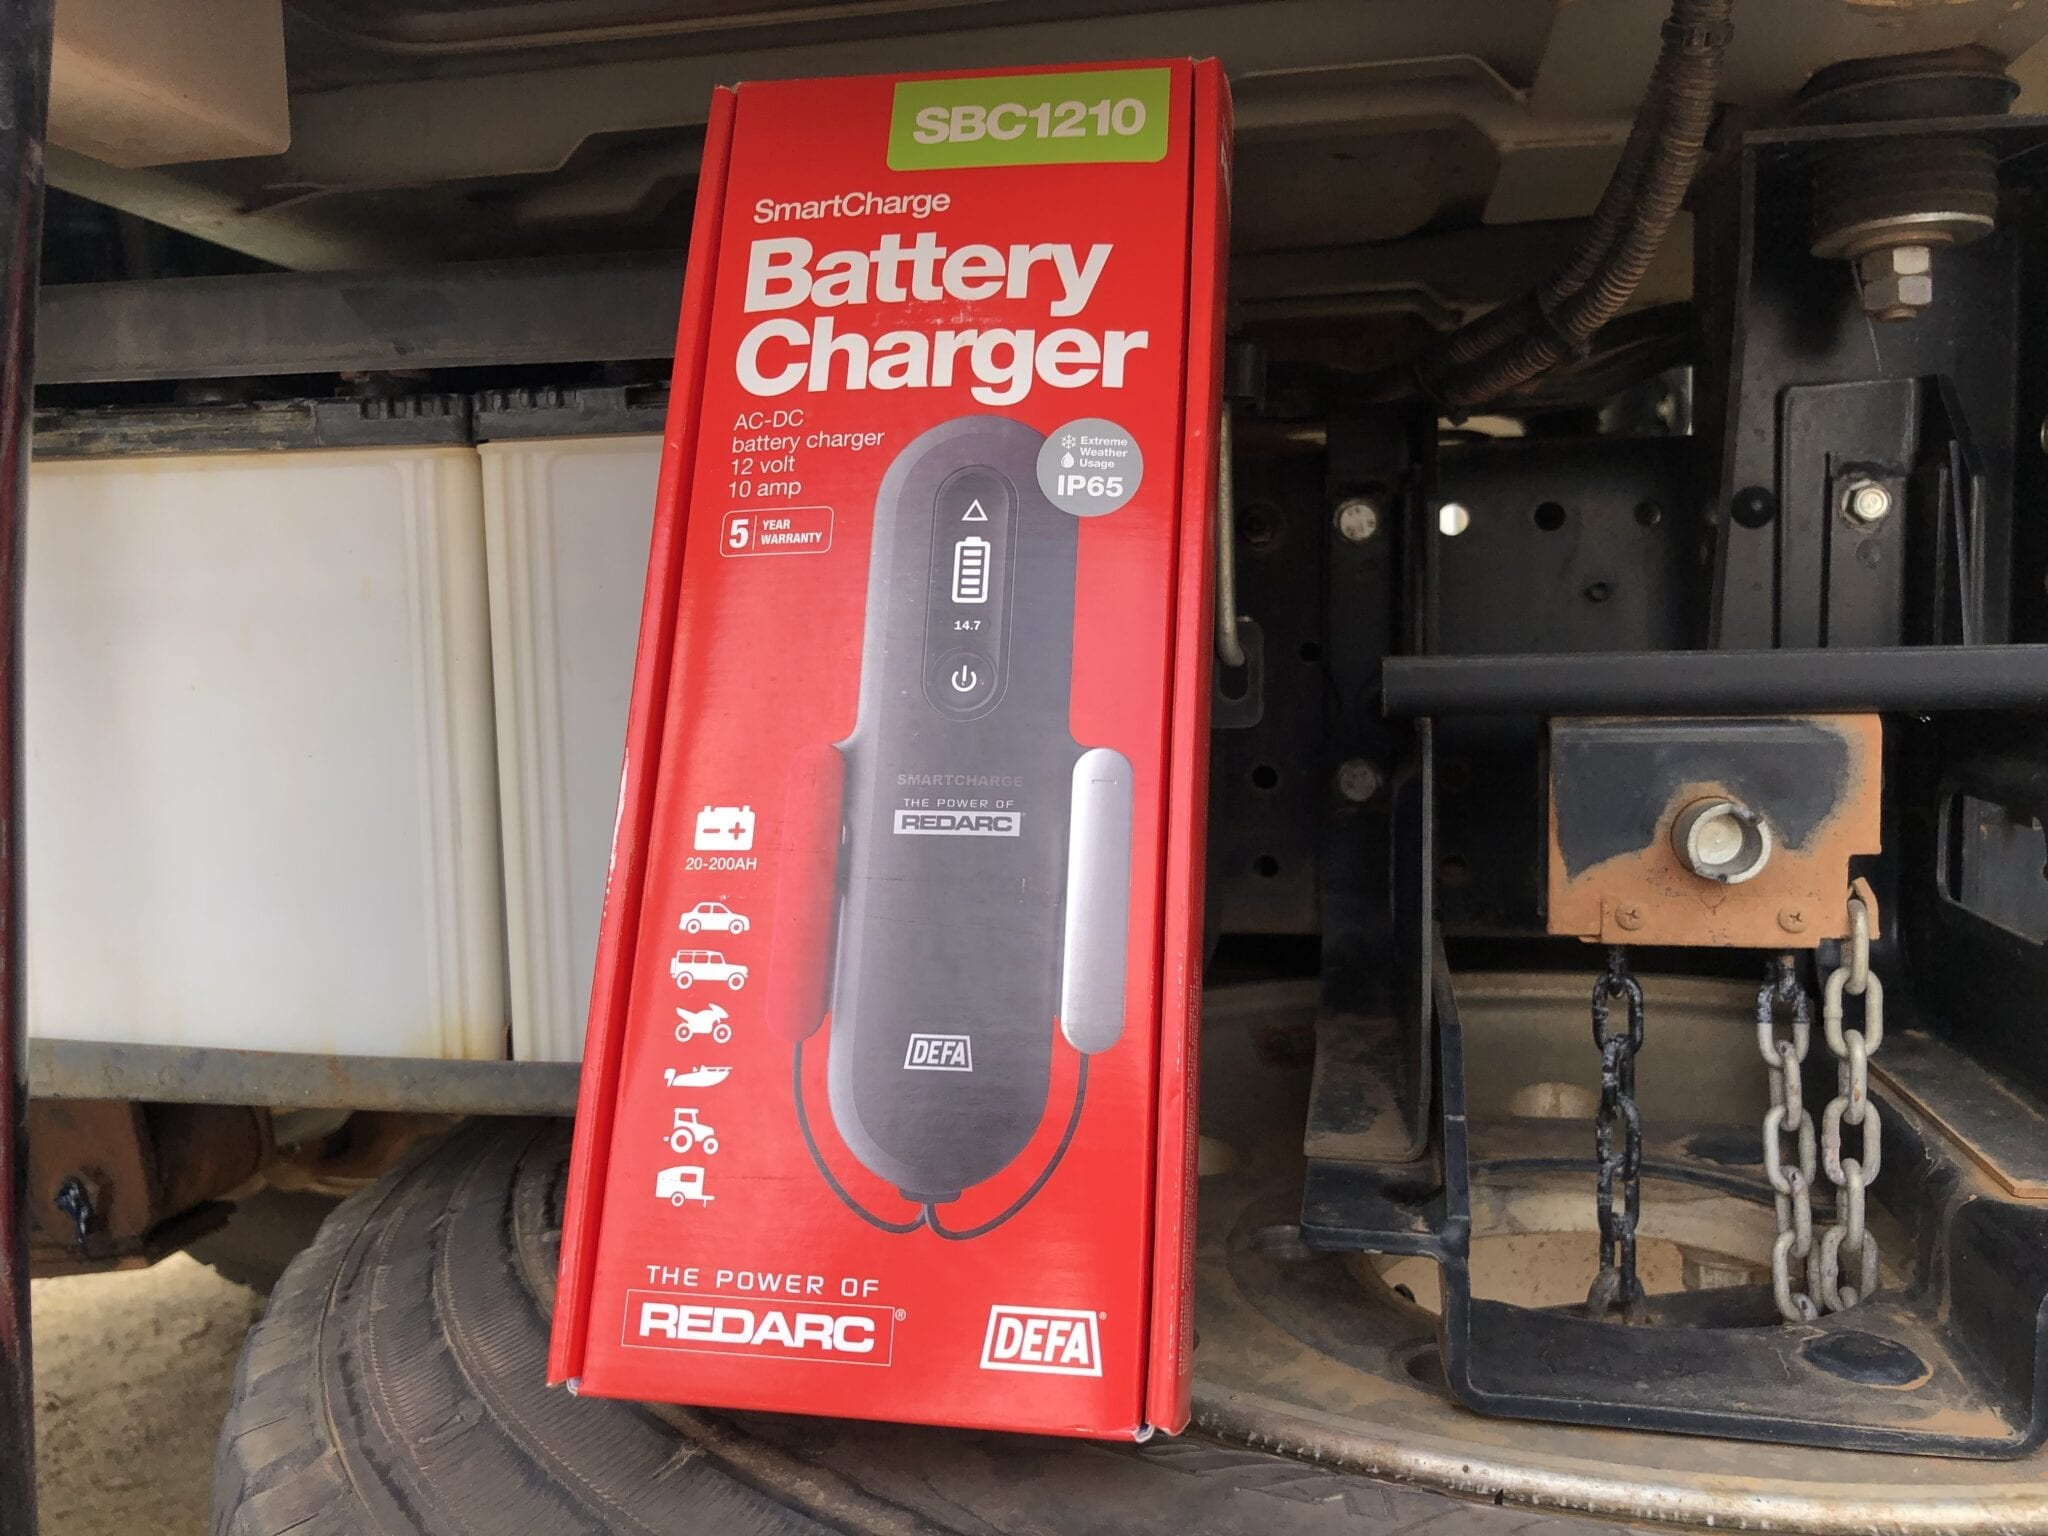 Our new REDARC battery charger pictured in front of our truck batteries.